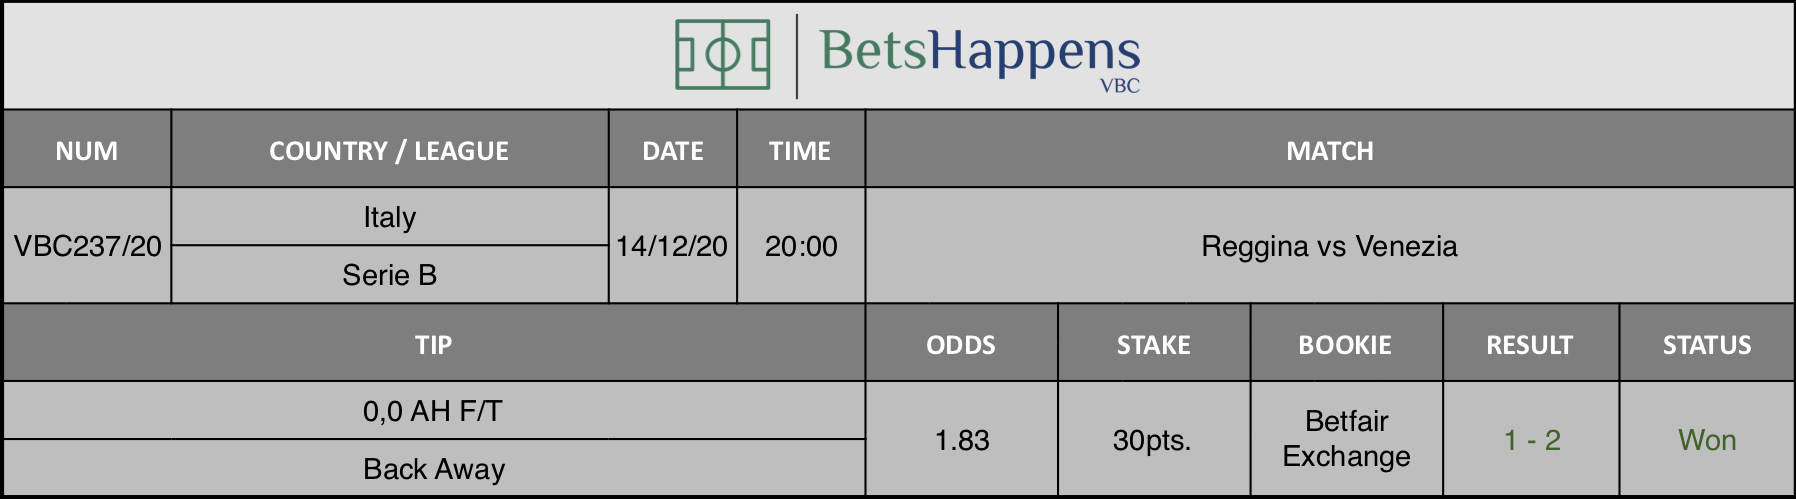 Results of our tip for the Reggina vs Venezia match where 0,0 AH F/T Back Away is recommended.